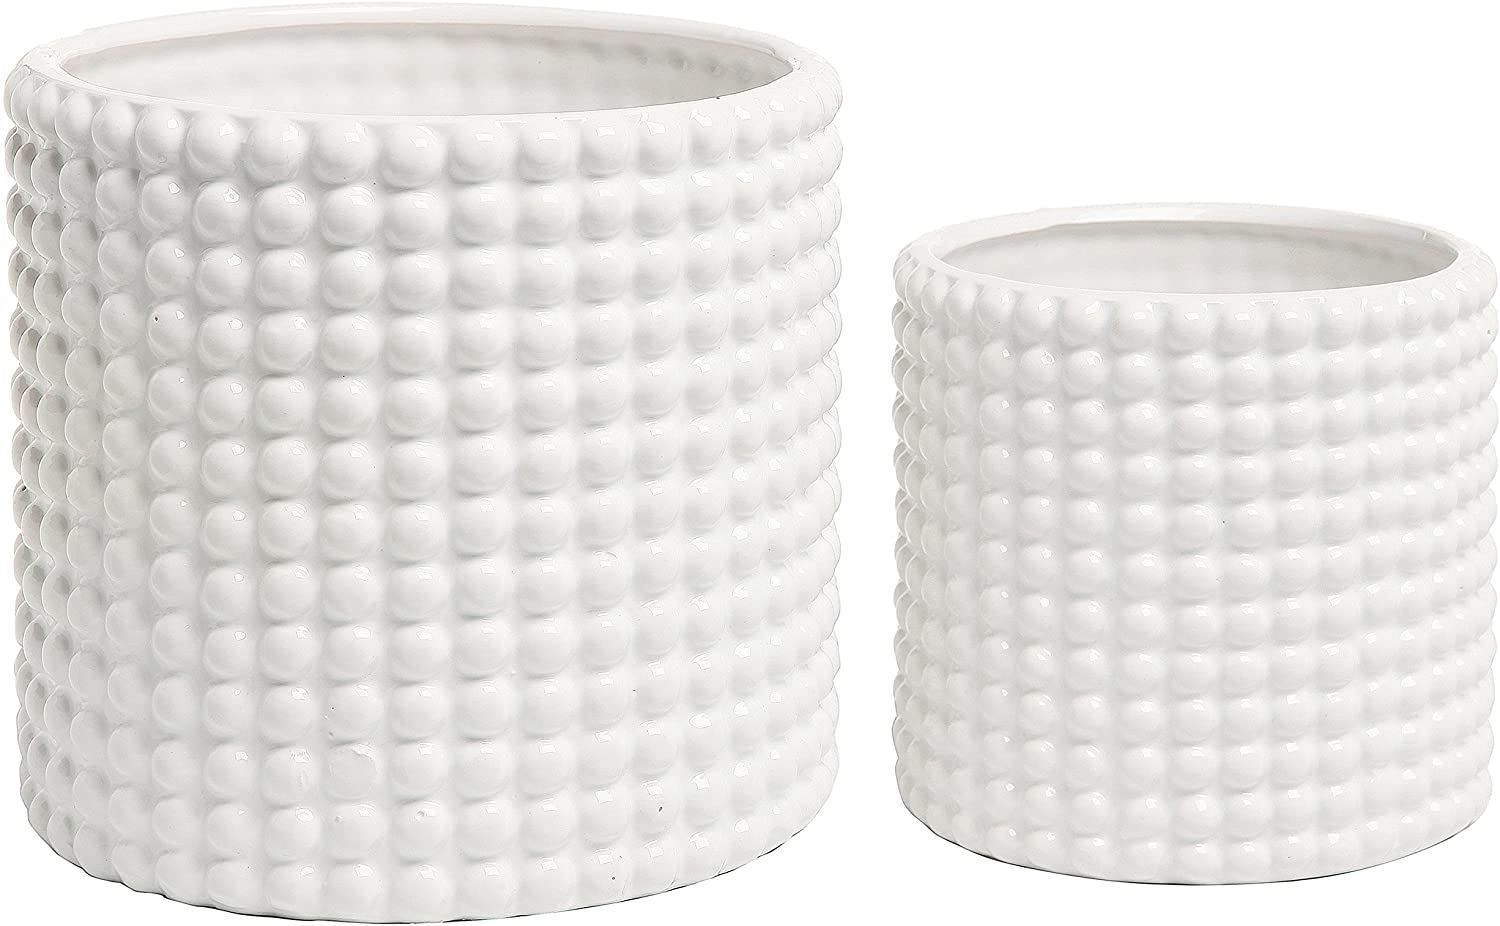 Ranking integrated 1st place Set of 2 White Luxury goods Ceramic Pla Textured Hobnail Flower Vintage-Style